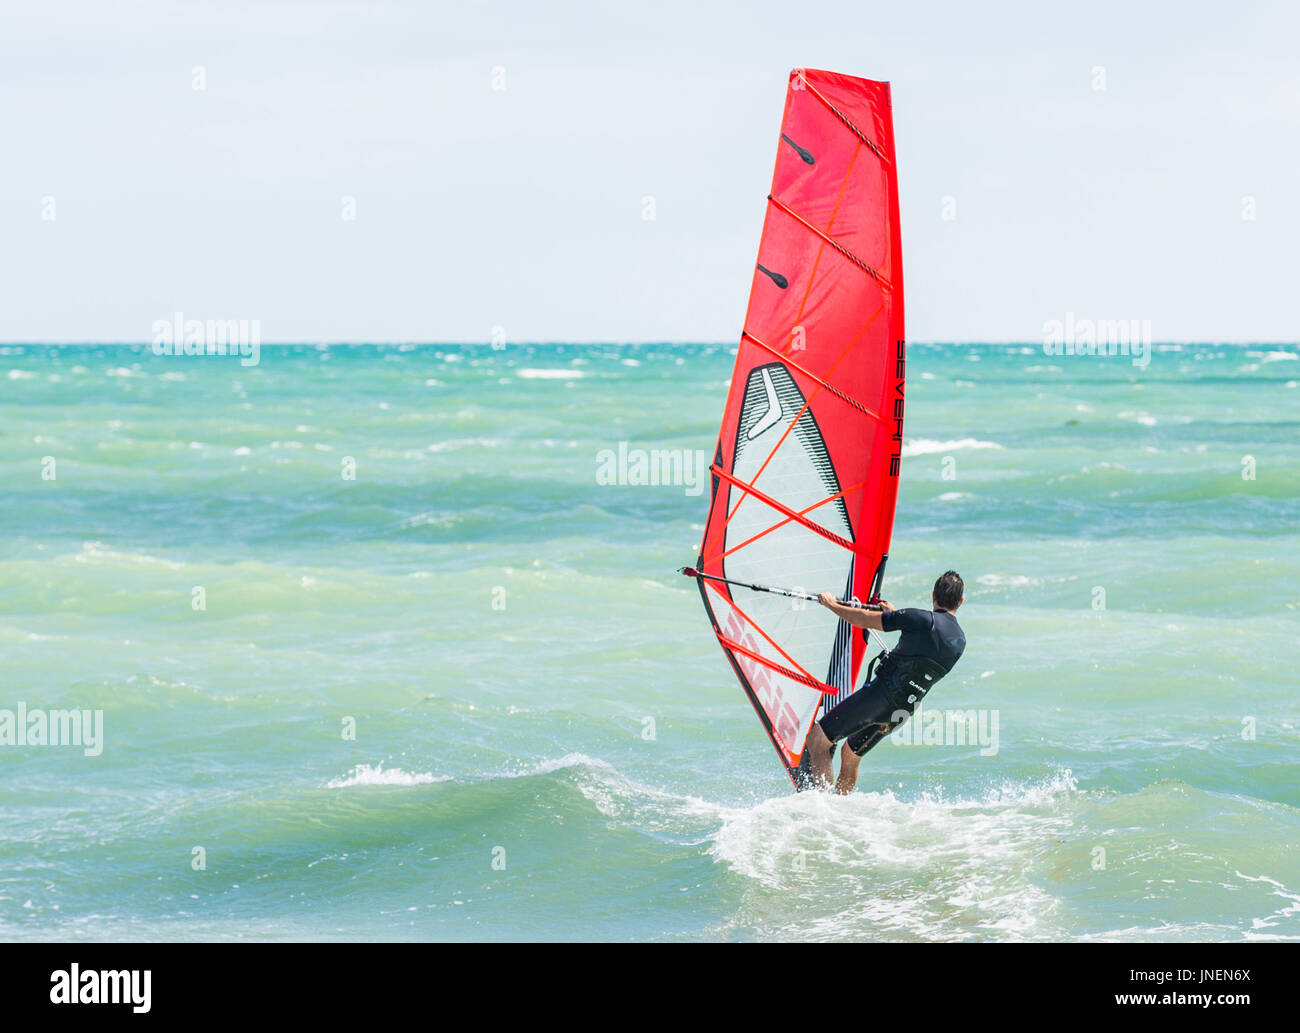 Man windsurfing on the sea on a windy day. - Stock Image